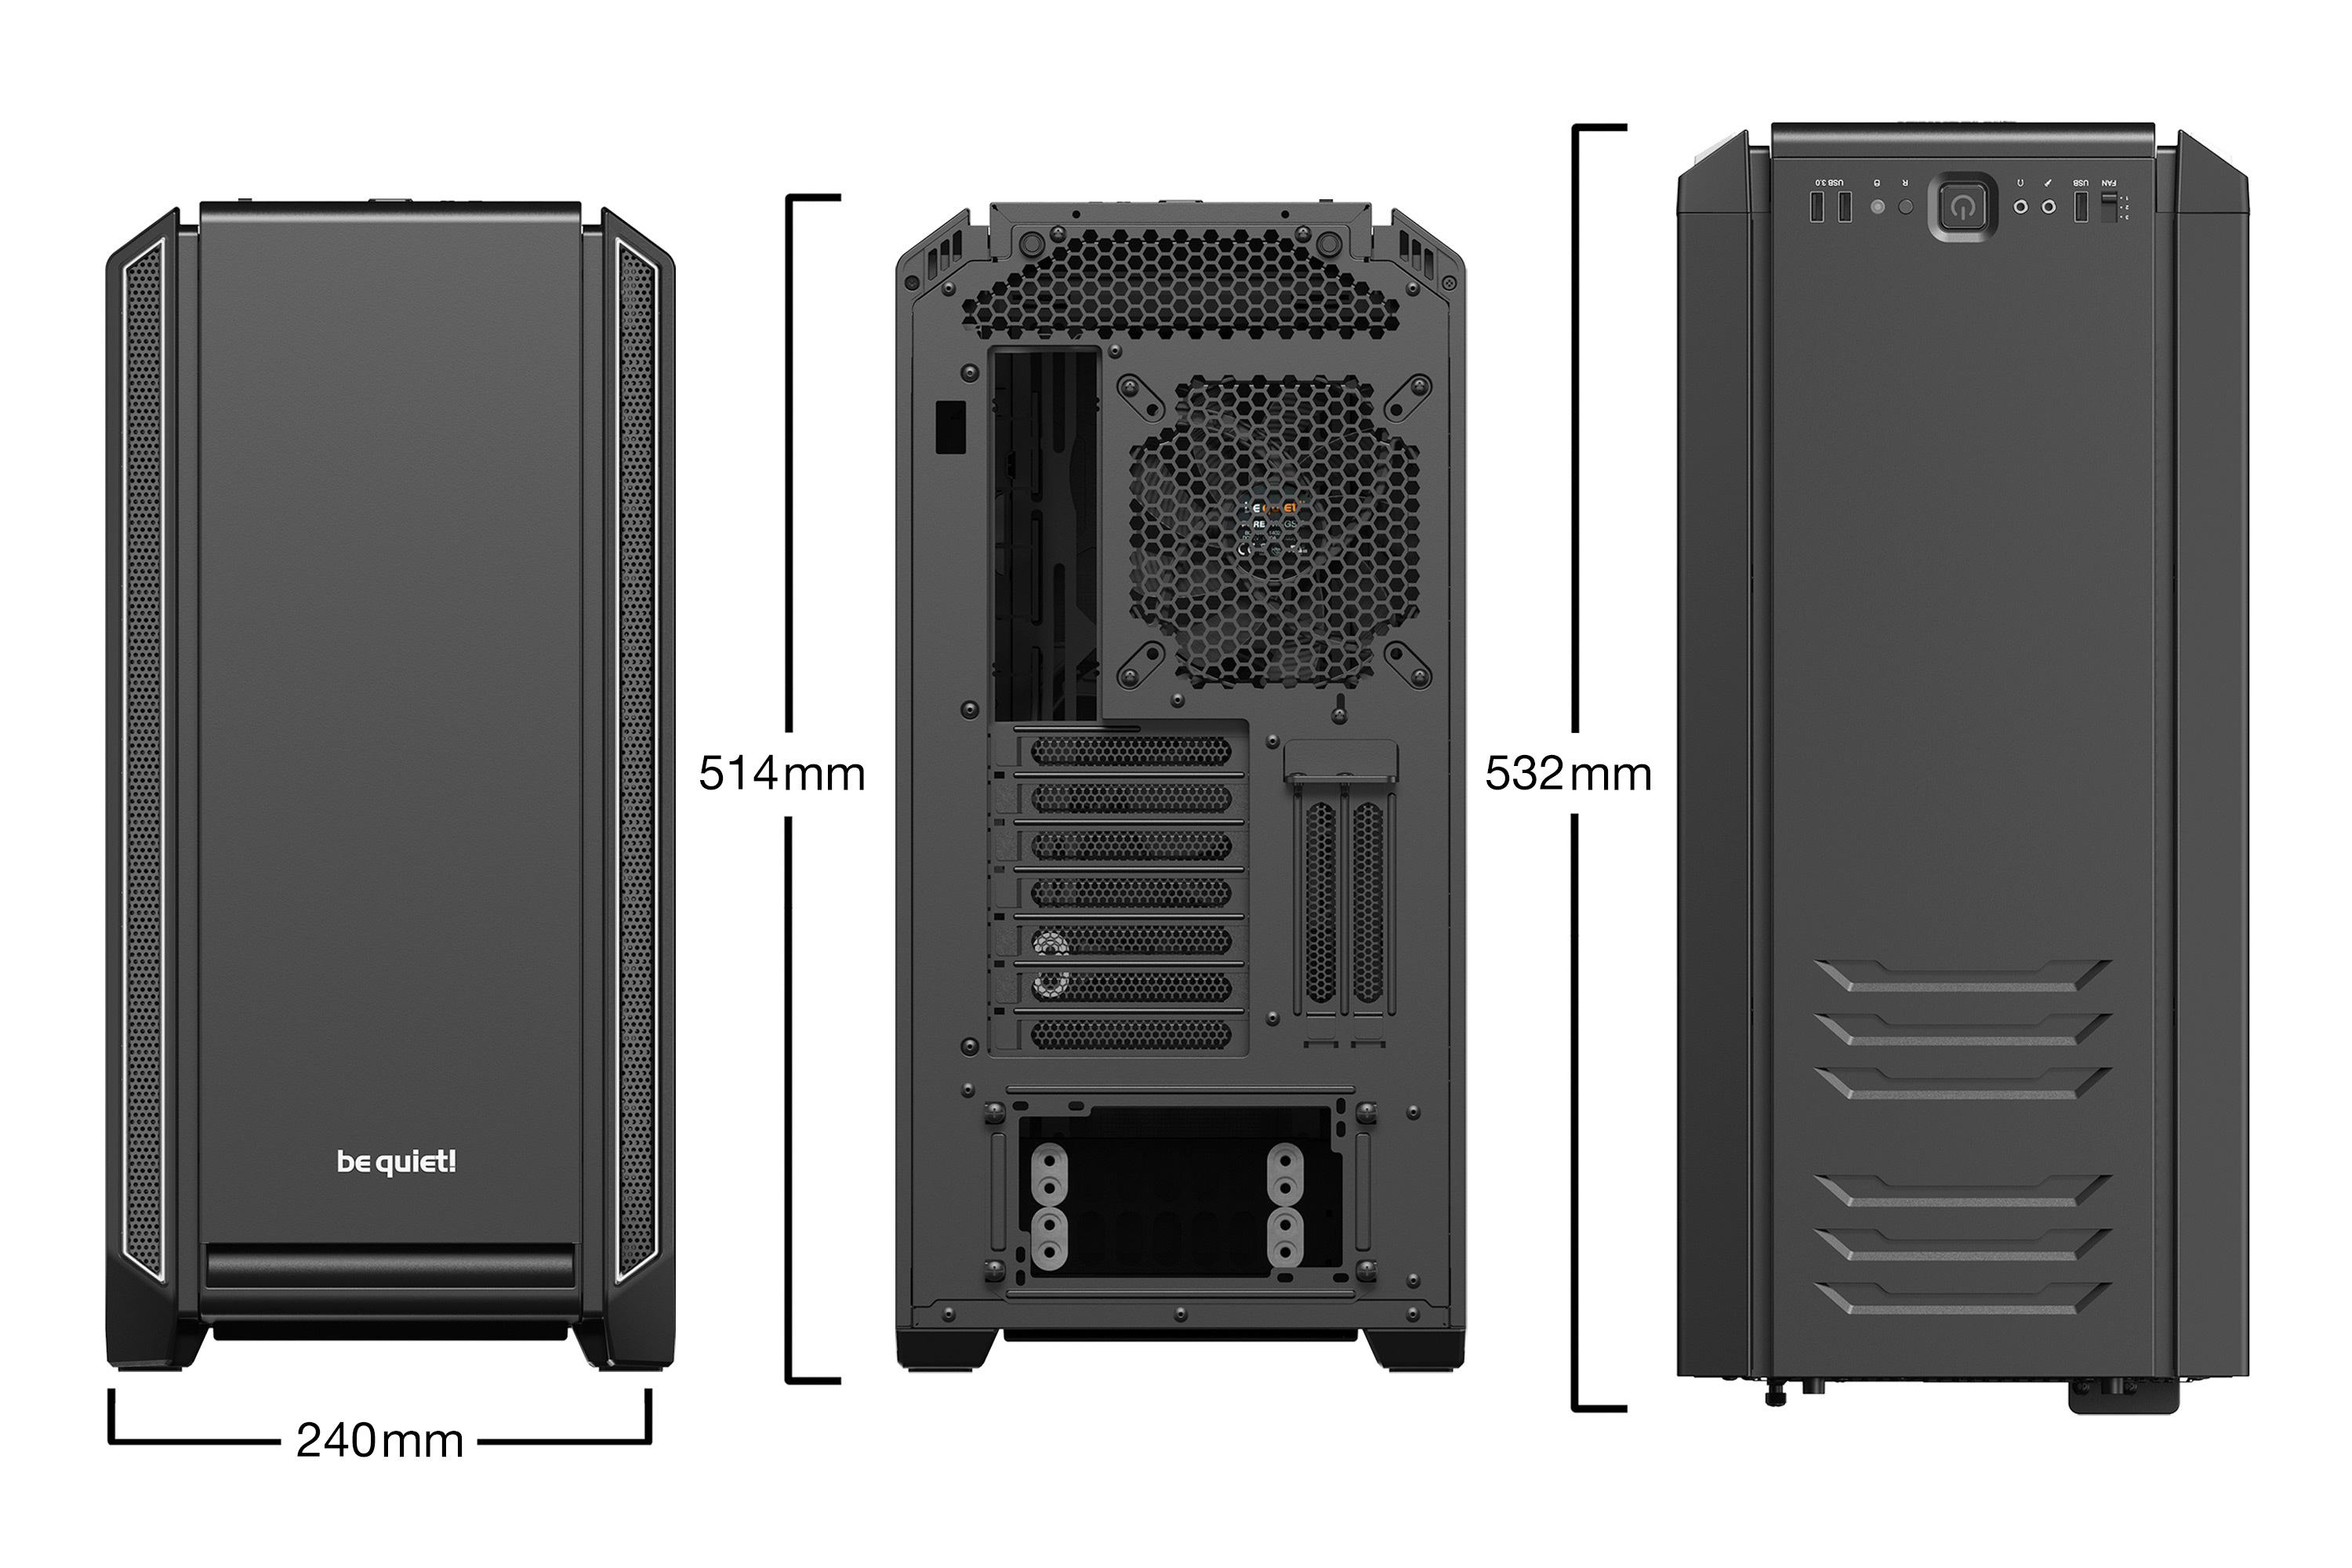 be quiet! Silent Base 601 Silver, 532 x 230 x 513, IO-panel 2x USB 3.0, 1x USB 2.0, HD Audio, 3 (7) x 3,5, 6 (14) x 2,5, inc 2x 140 mm Pure Wings 2, dual air channel cooling, 3-in-1 airintake sidepanel